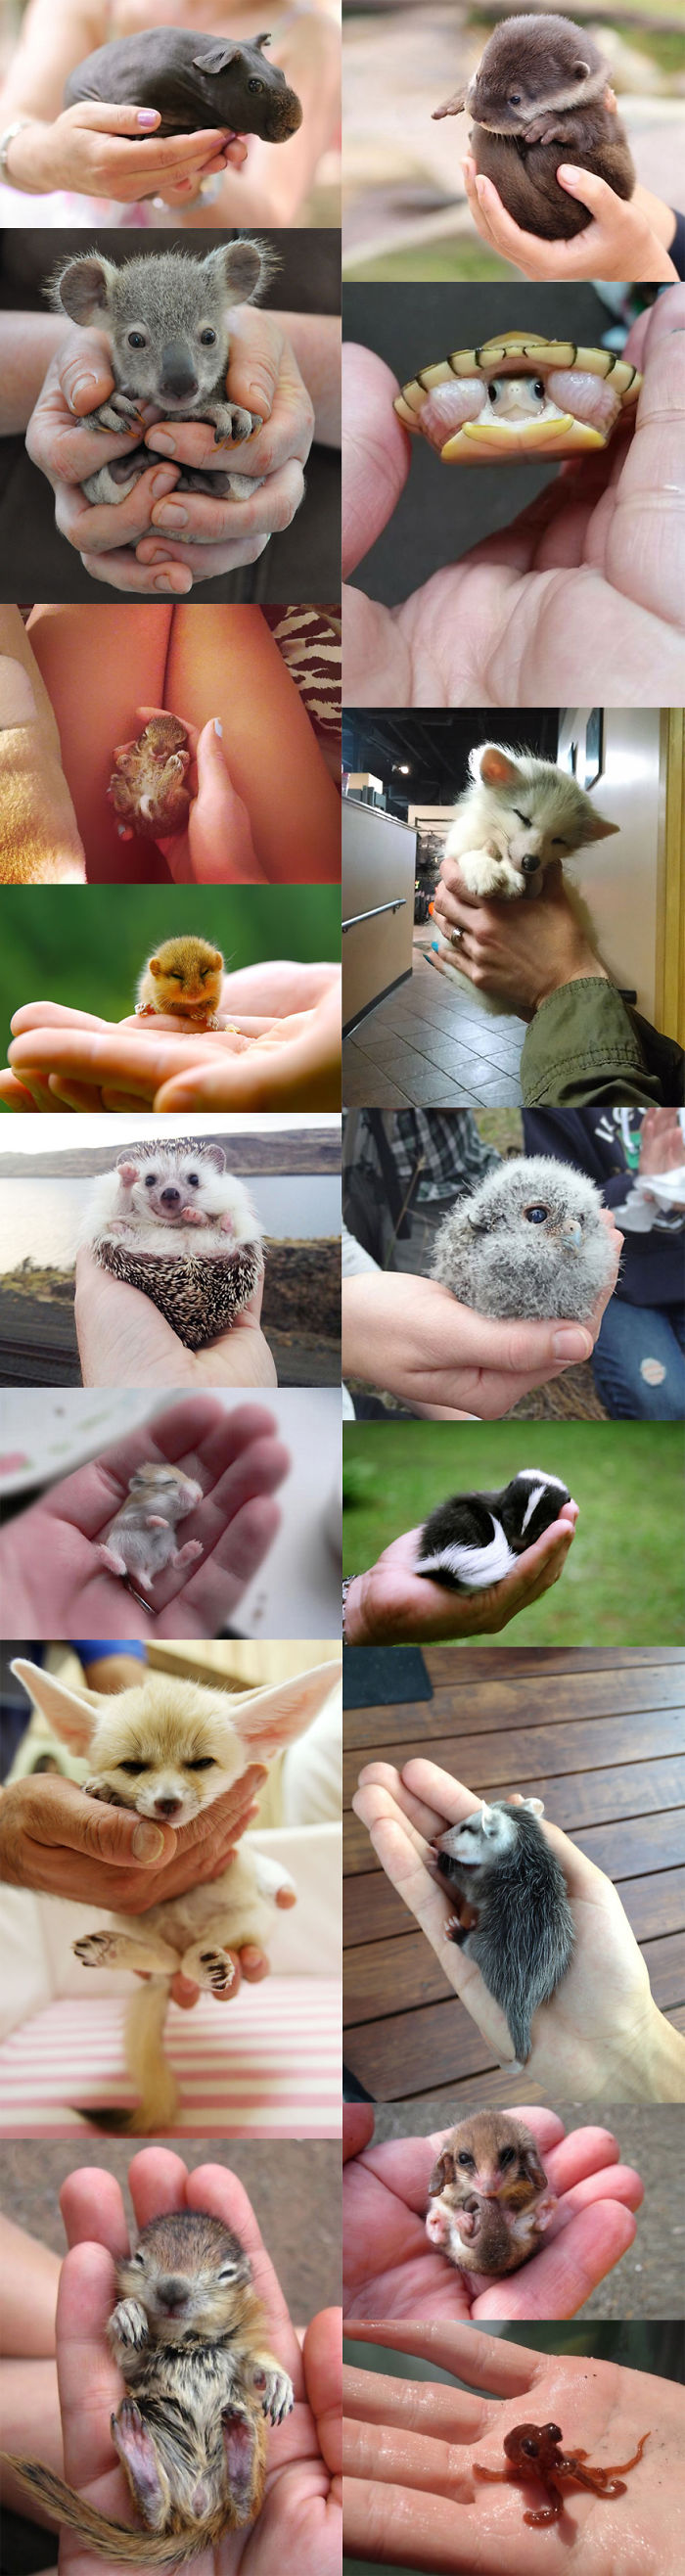 Cute Baby Animals Palms Hands